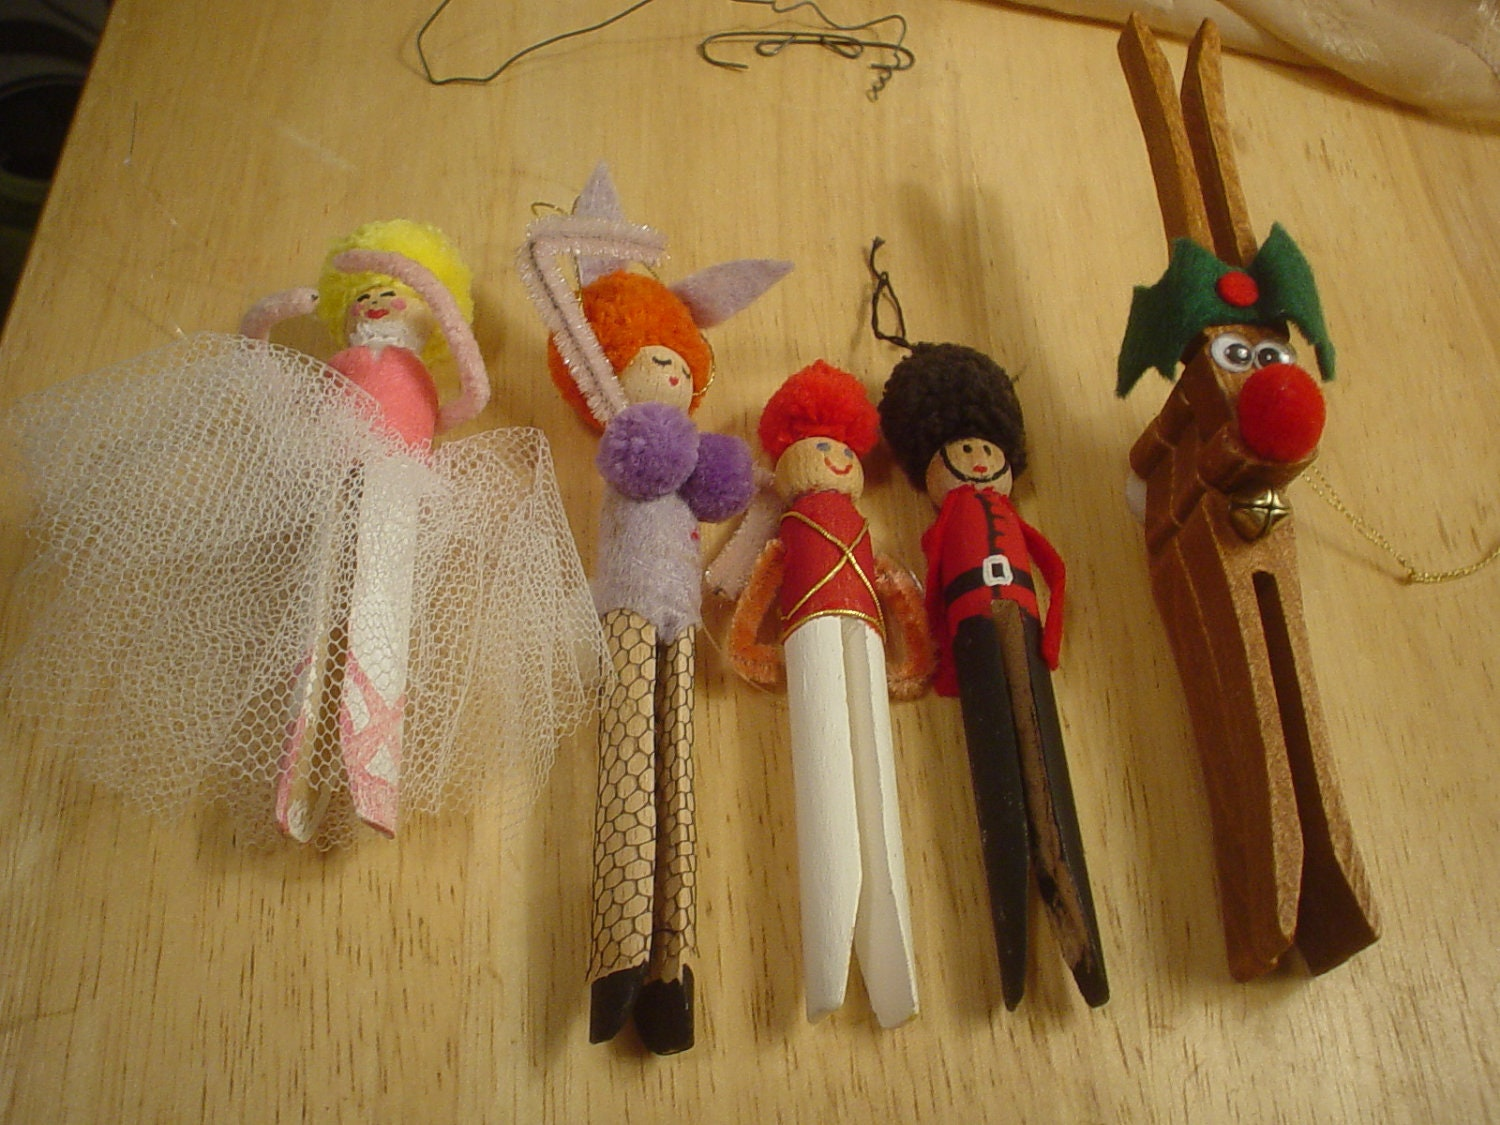 5 Wooden Clothespin Ornaments Ballerina Dancer Toy Soldier